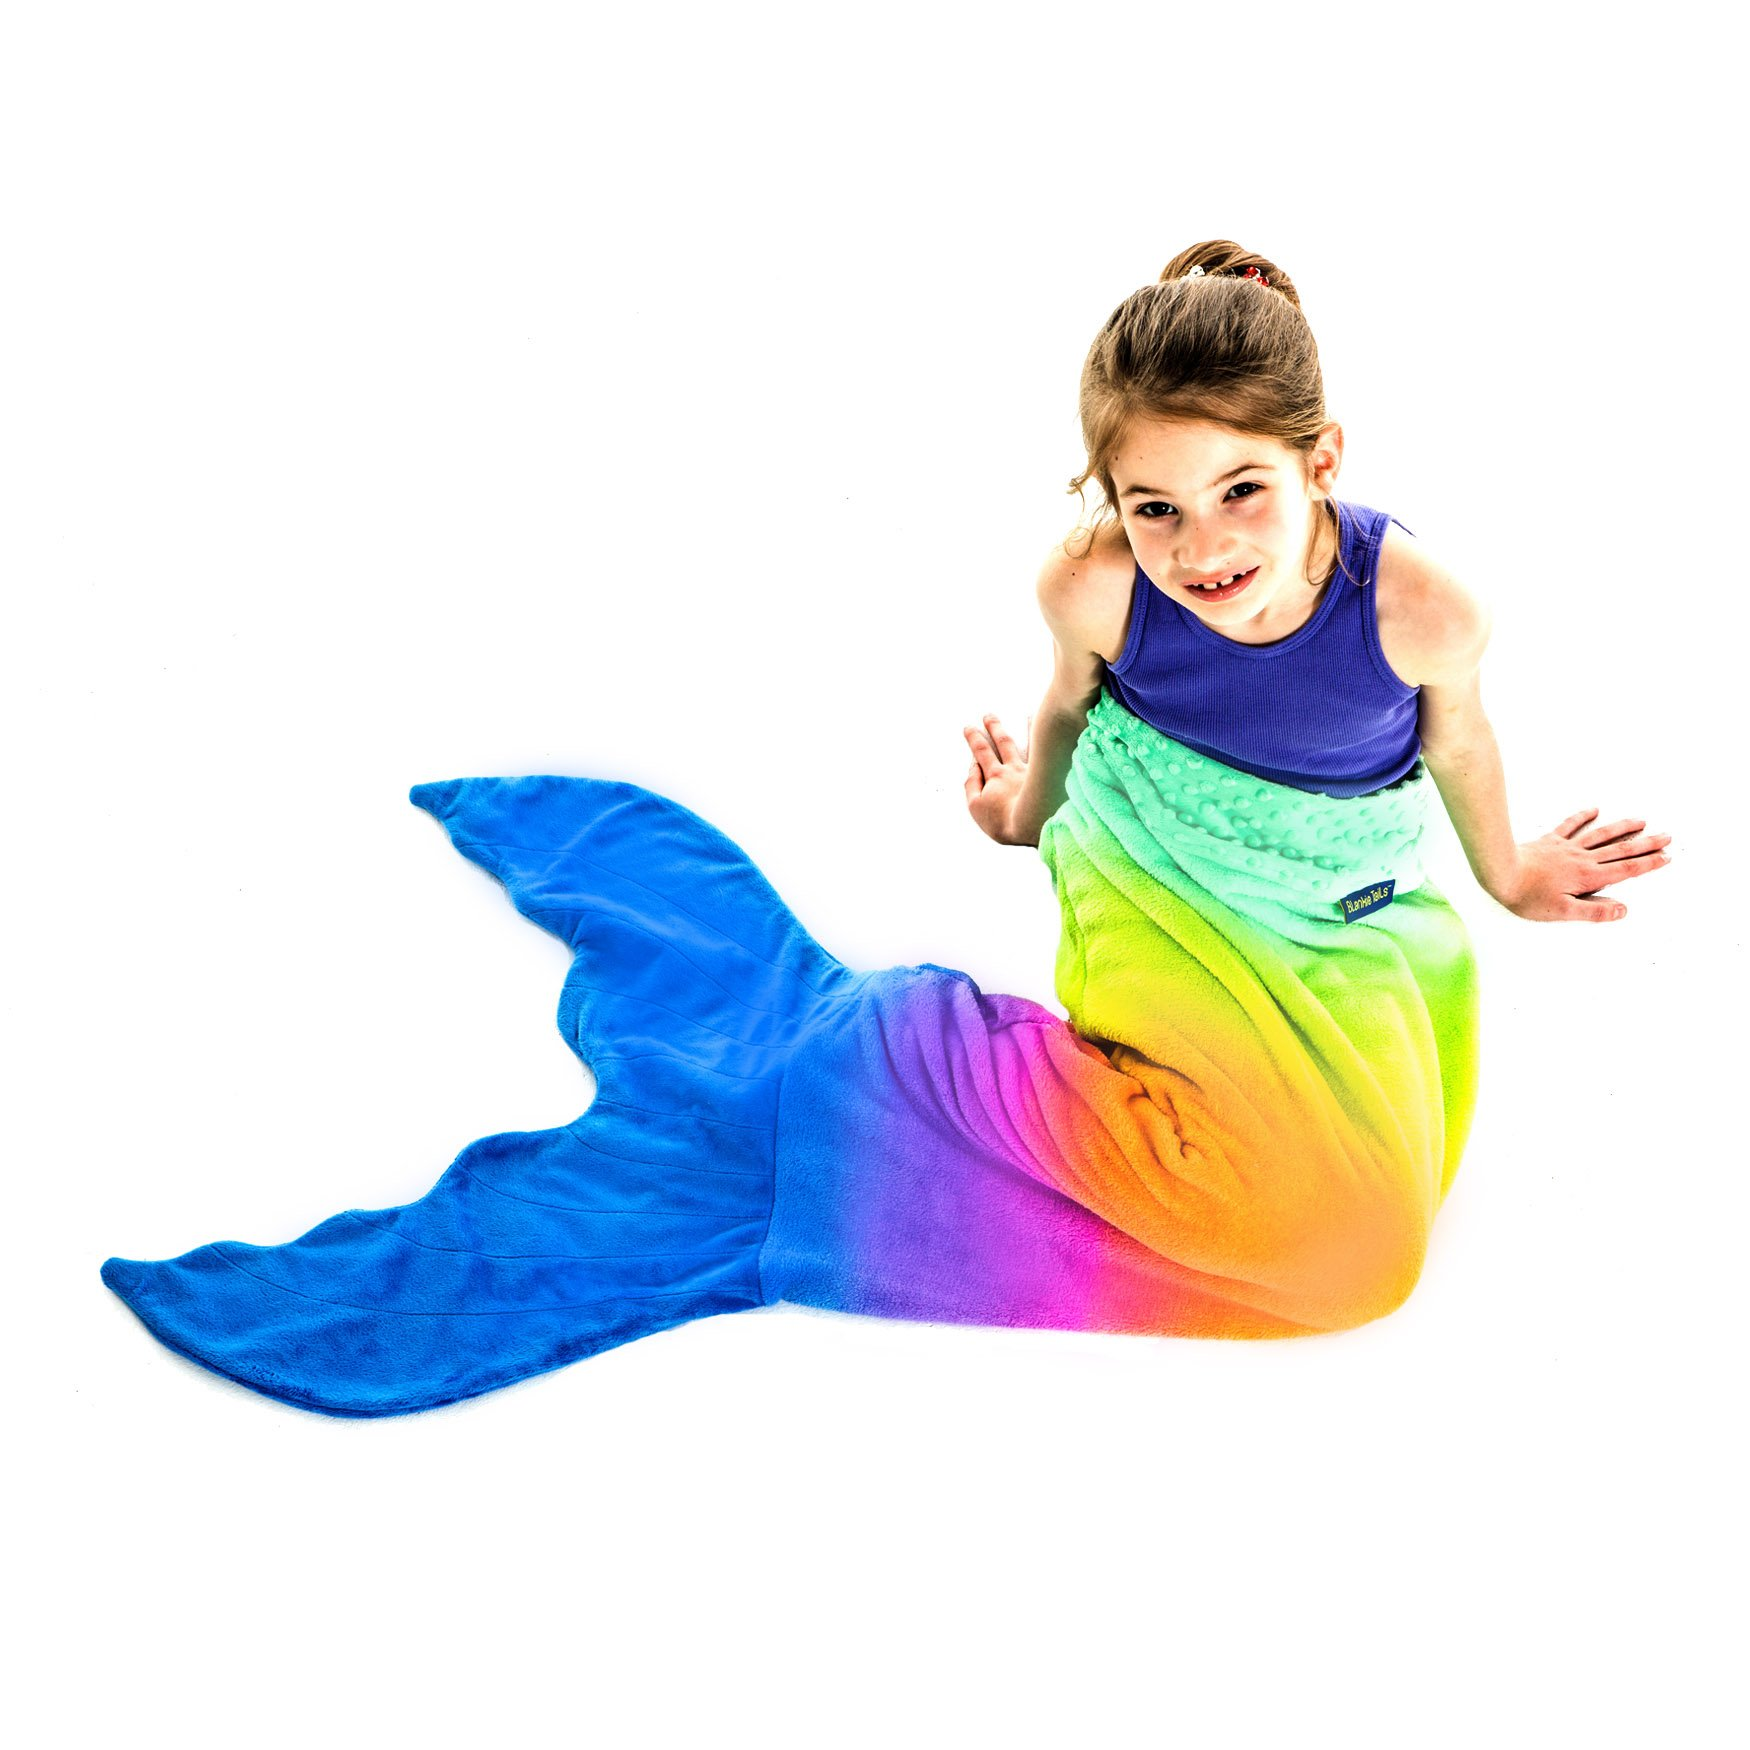 Mermaid Tail Blanket - Gorgeous Rainbow Ombre Design - Double-Sided Minky Fleece Mermaid Tail Sized for Kids - Climb Inside this Cozy Wearable Blanket